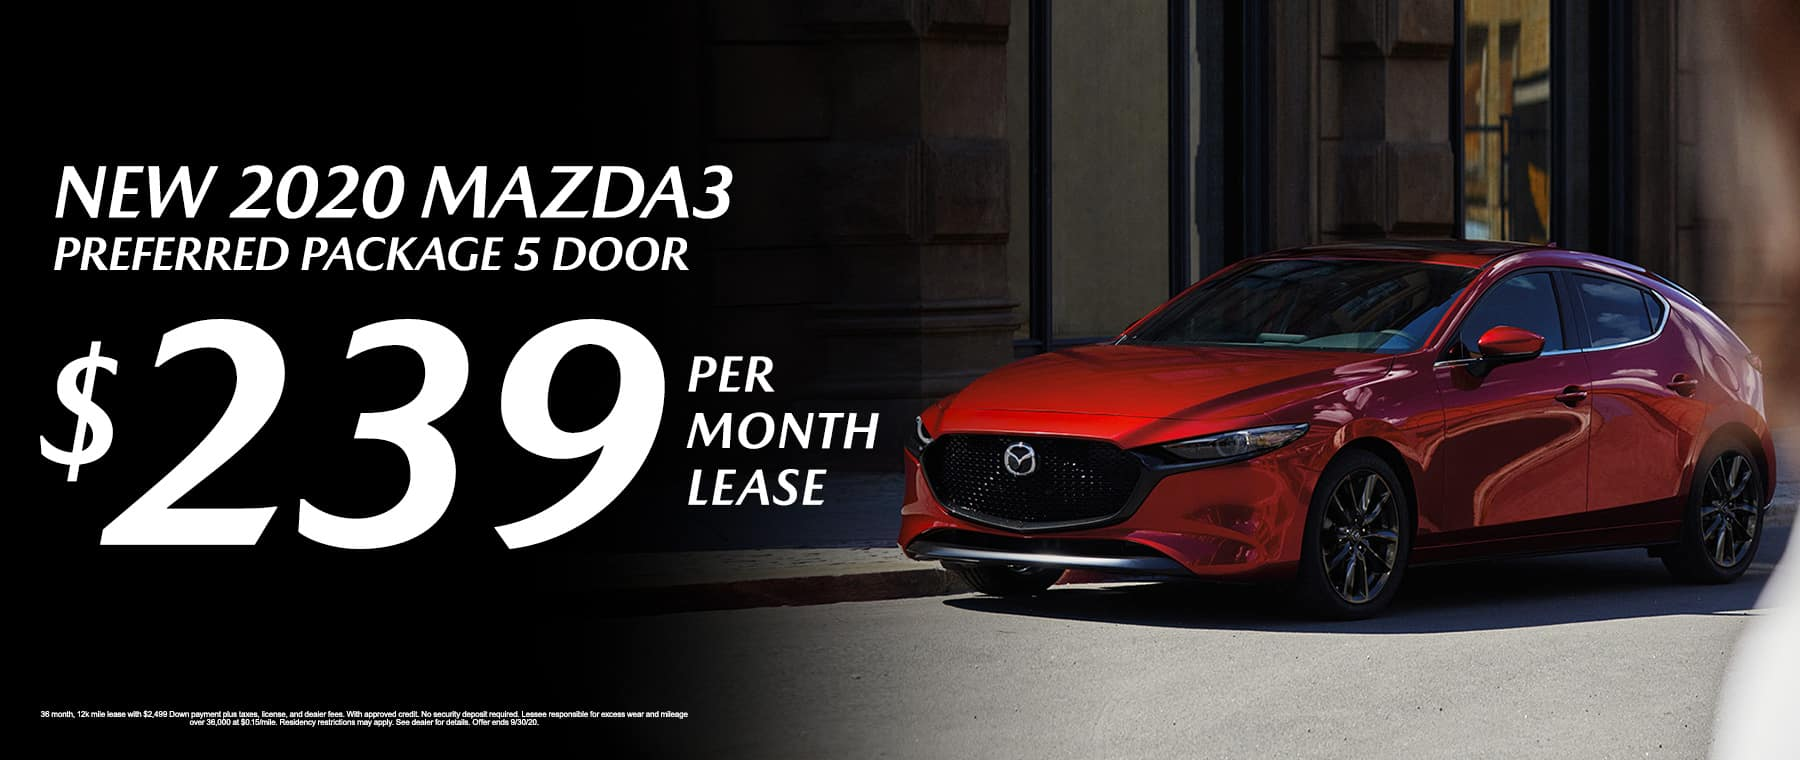 Lease a New 2020 Mazda3 Preferred Package 5 Door for $239 per month at Mazda of Fort Walton Beach!